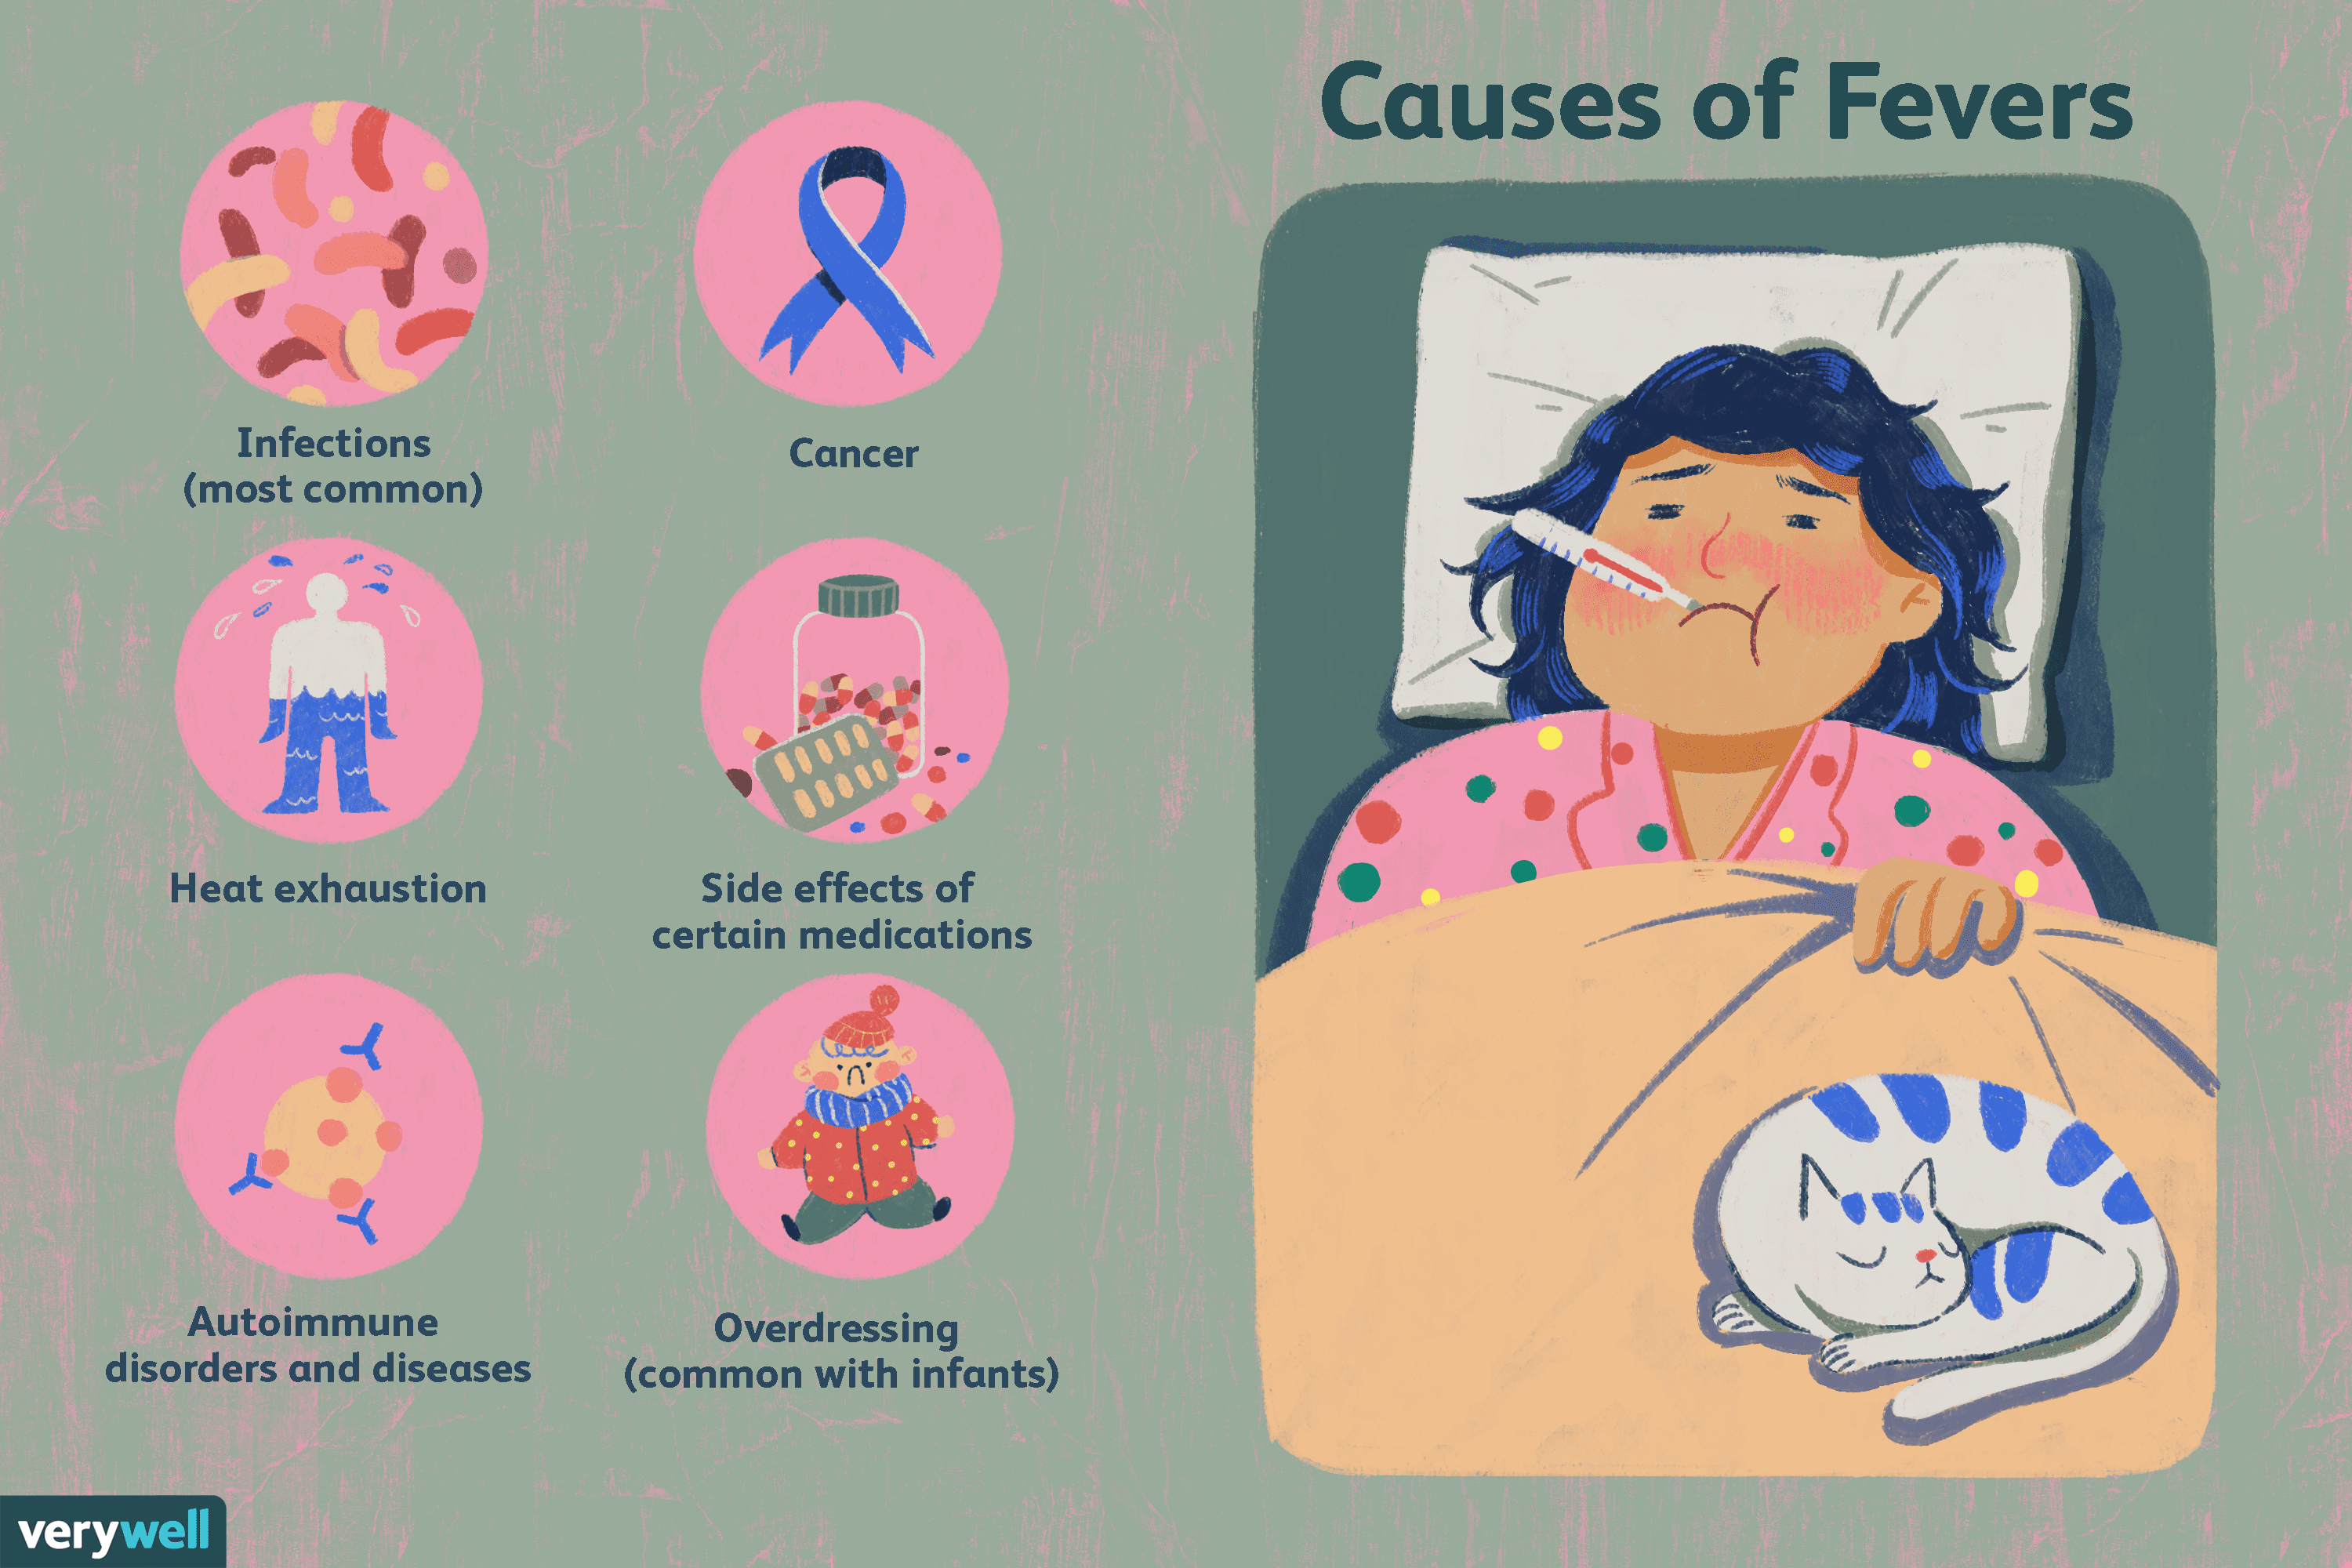 Causes of Fevers